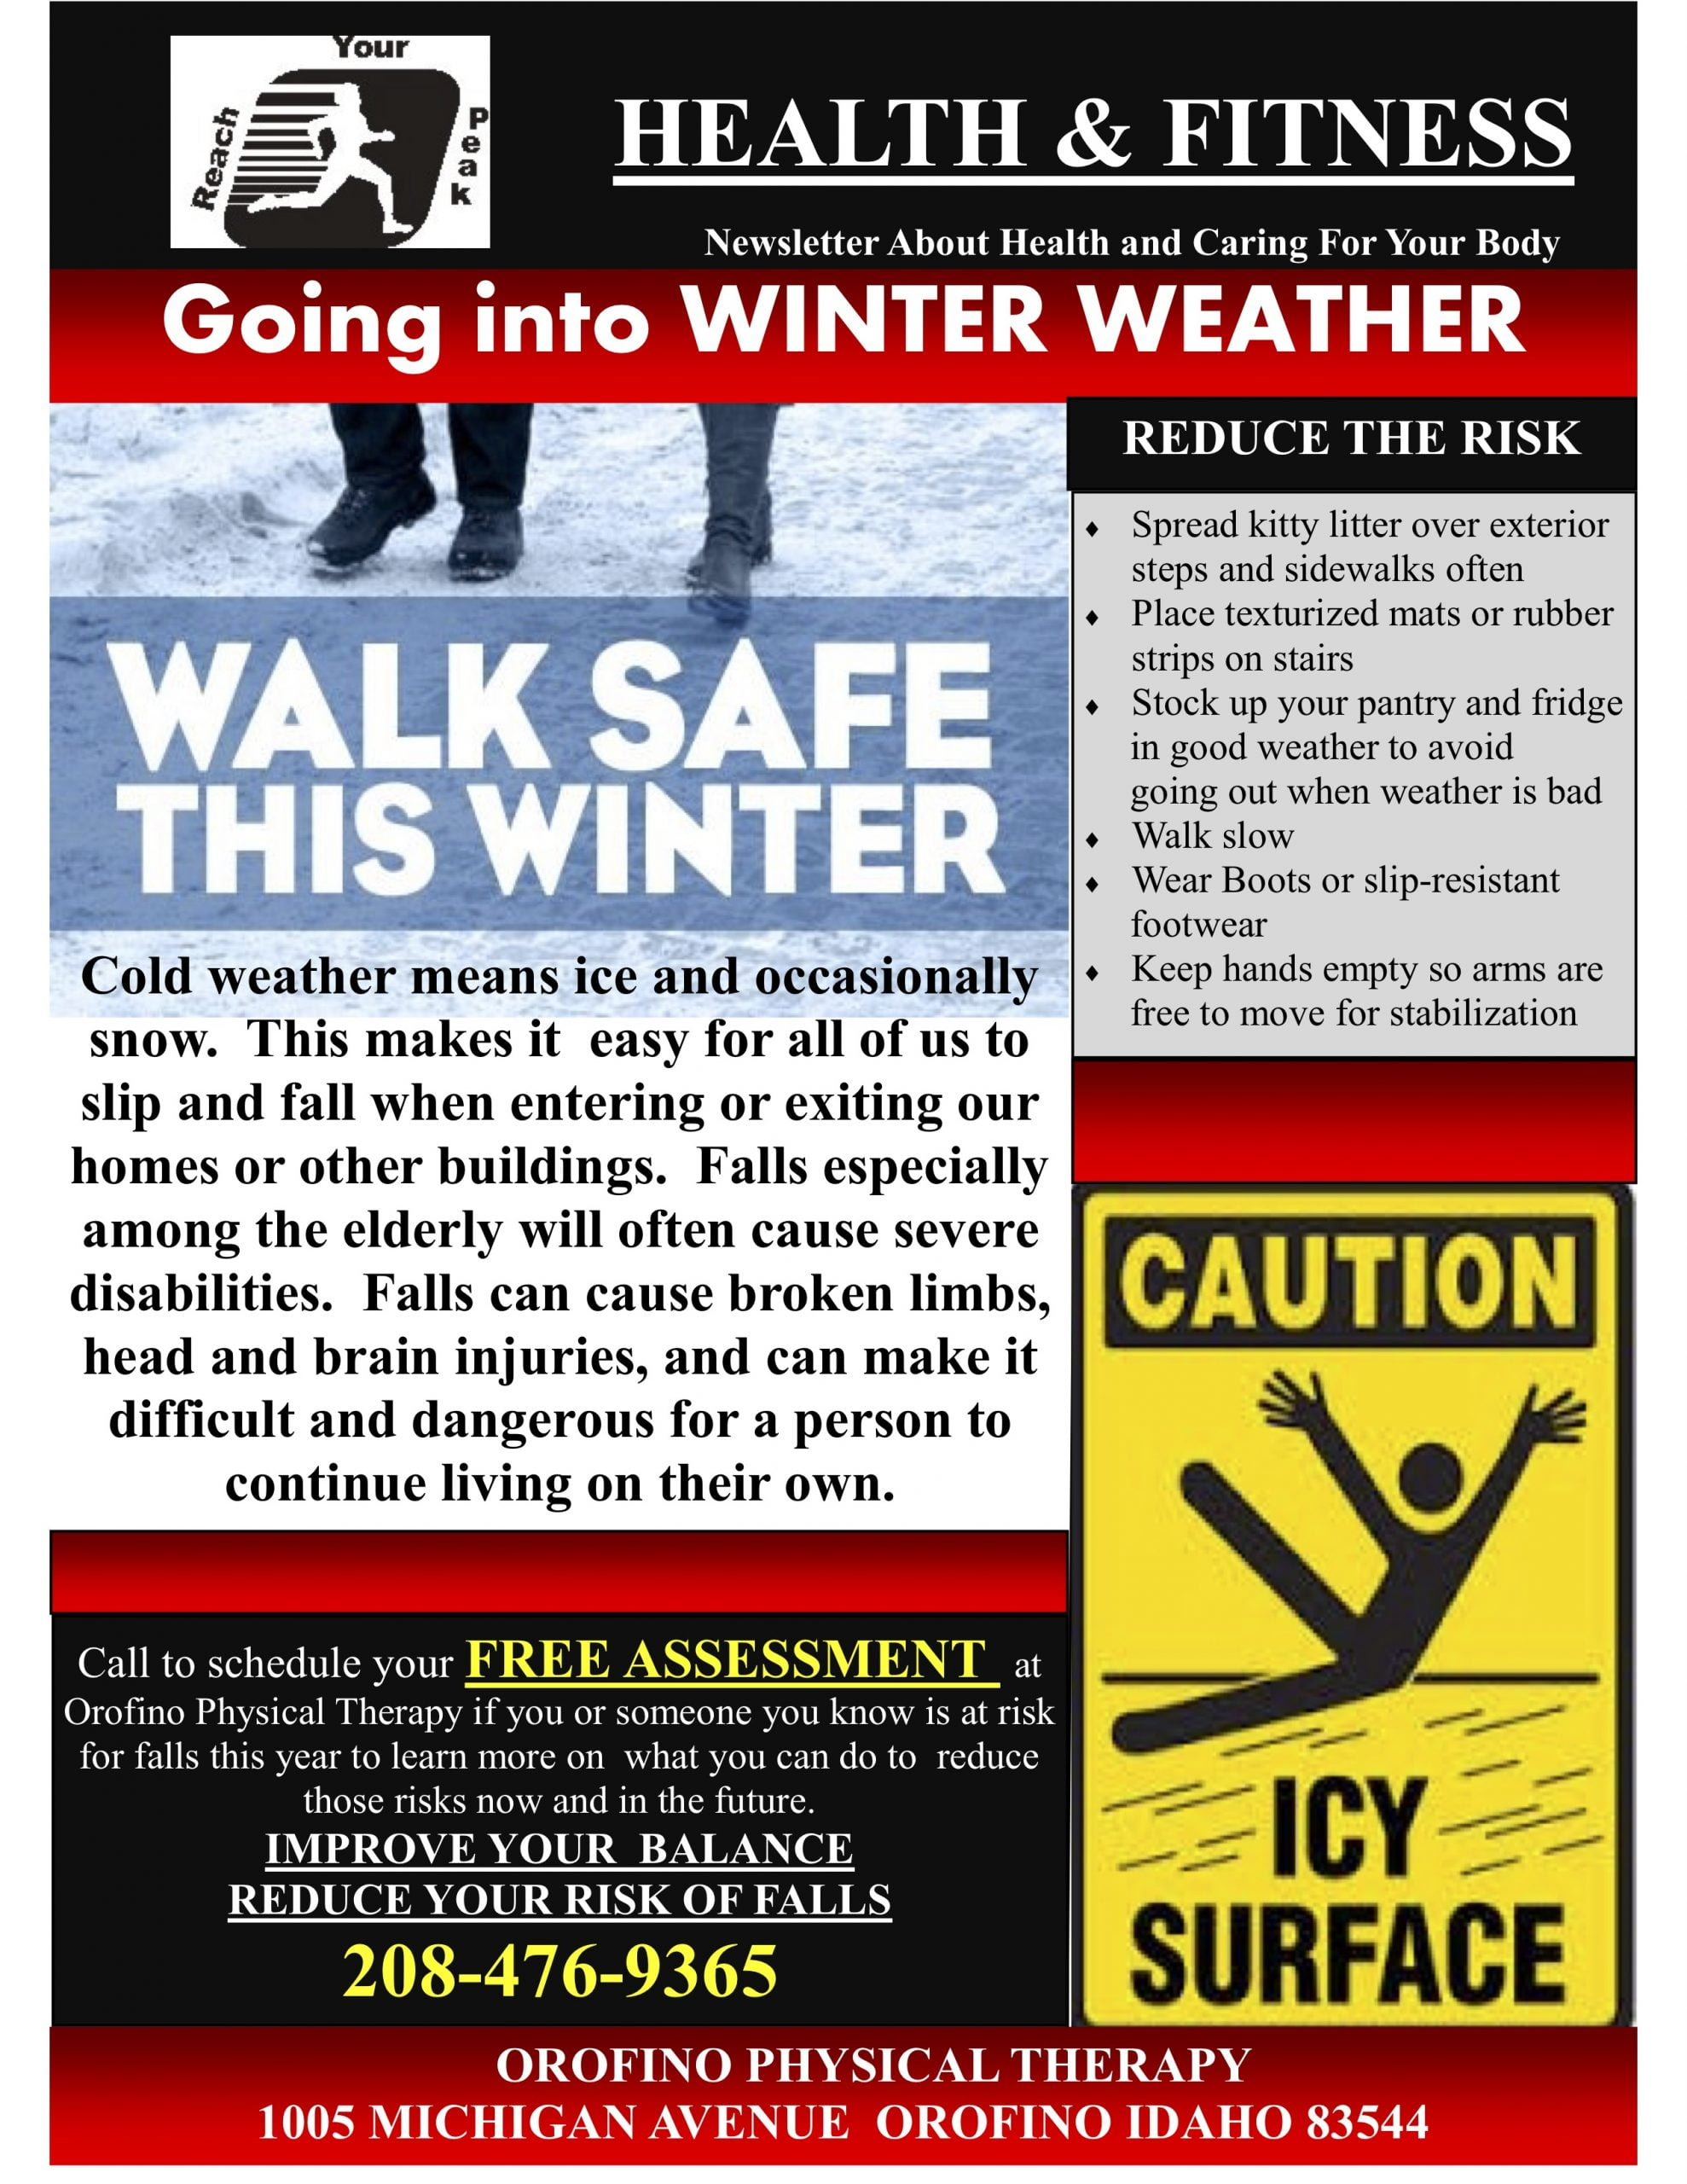 Walk safe in winter